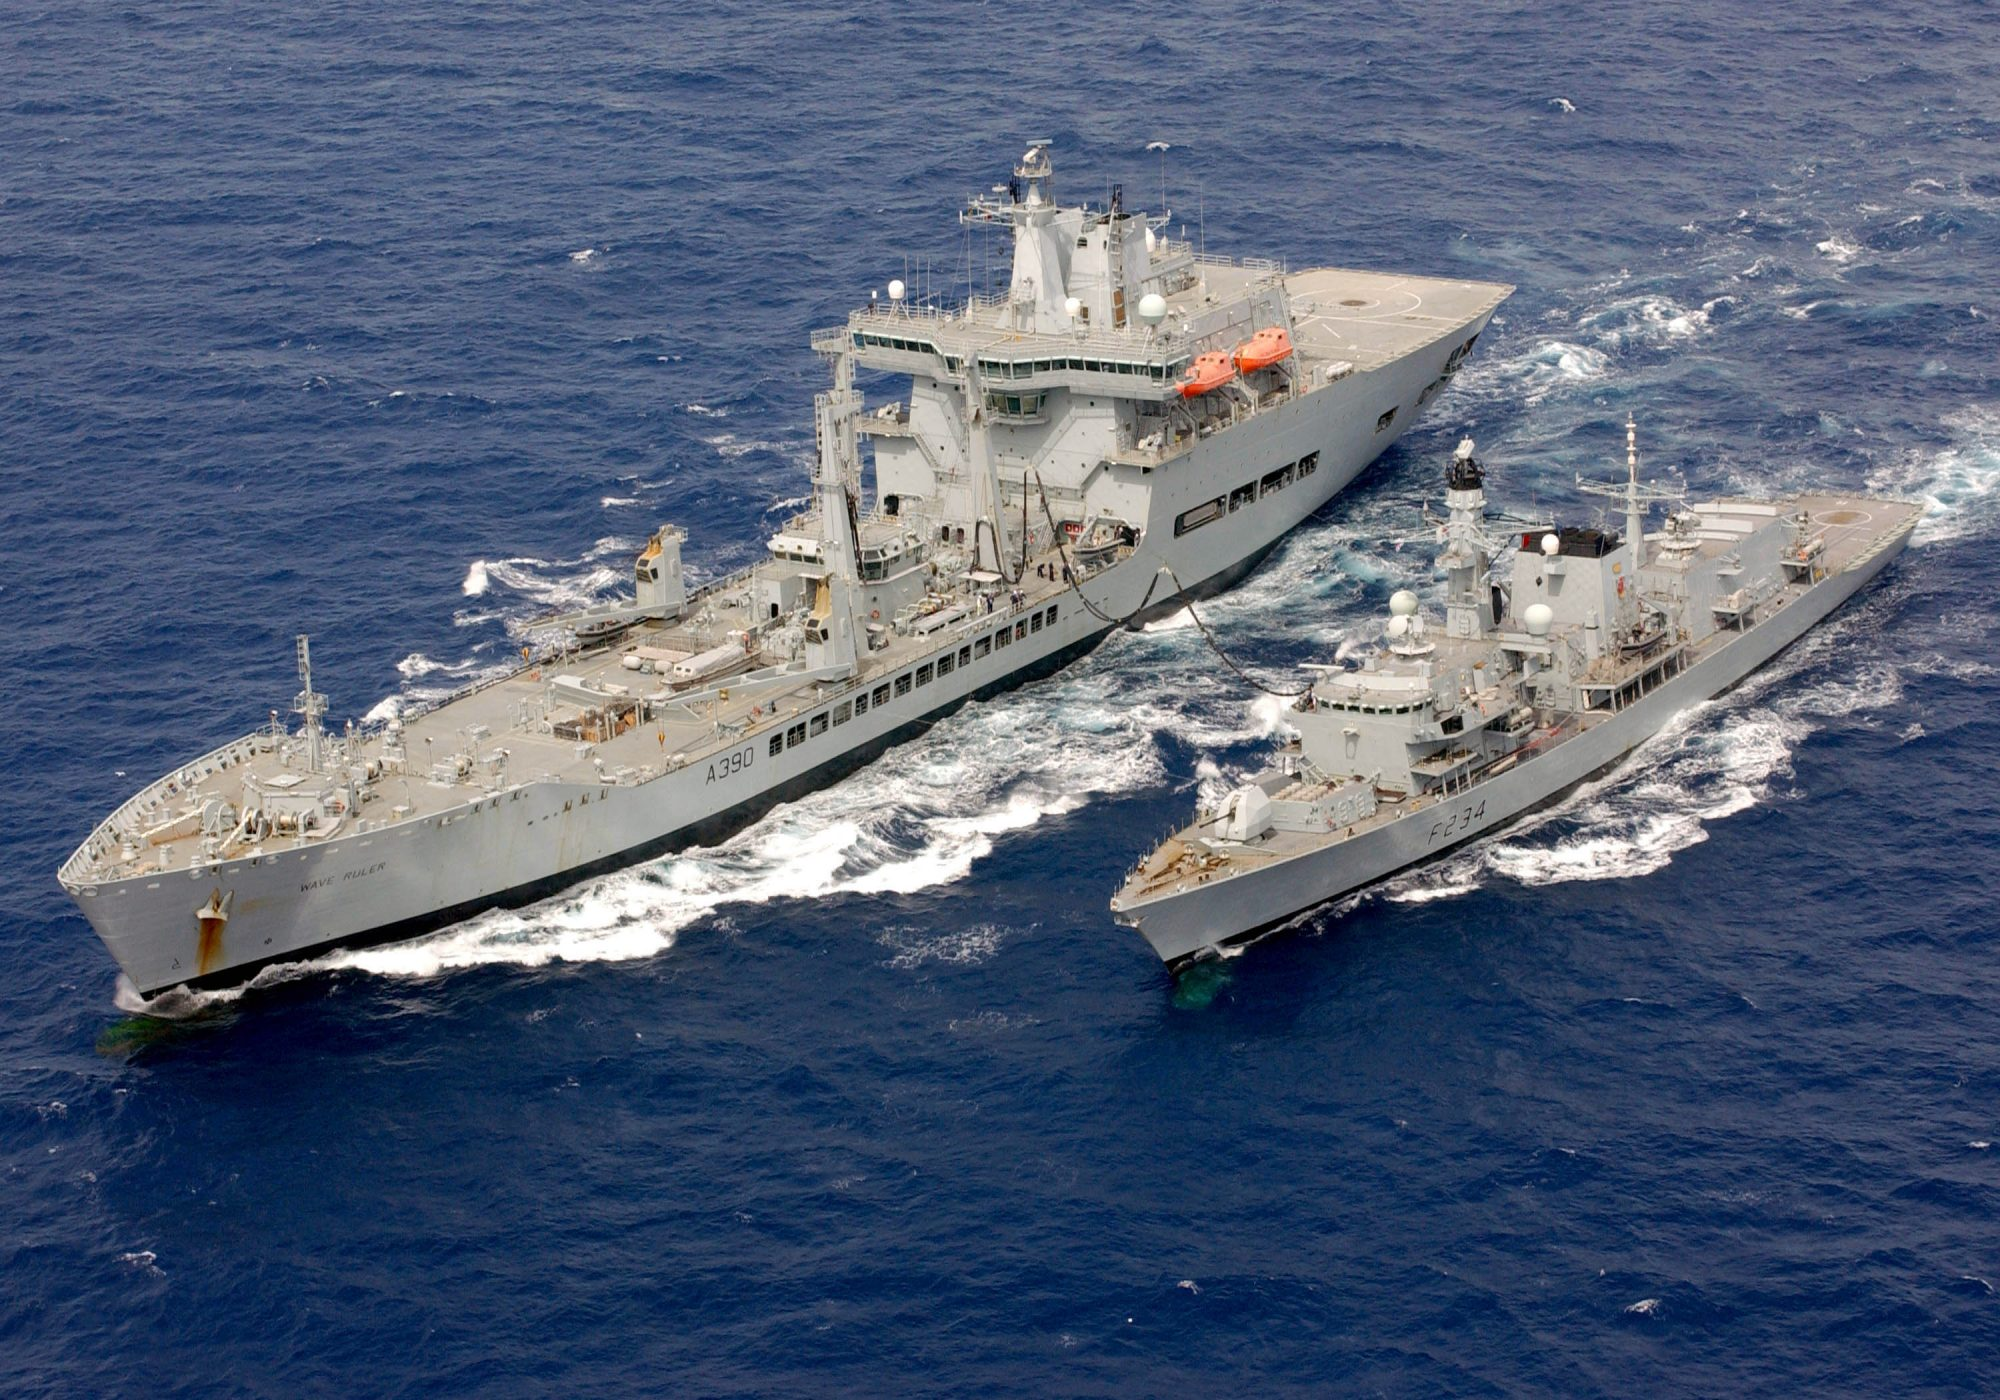 RFA Wave Ruler reabastecendo a fragata Type 23 HMS Iron Duke